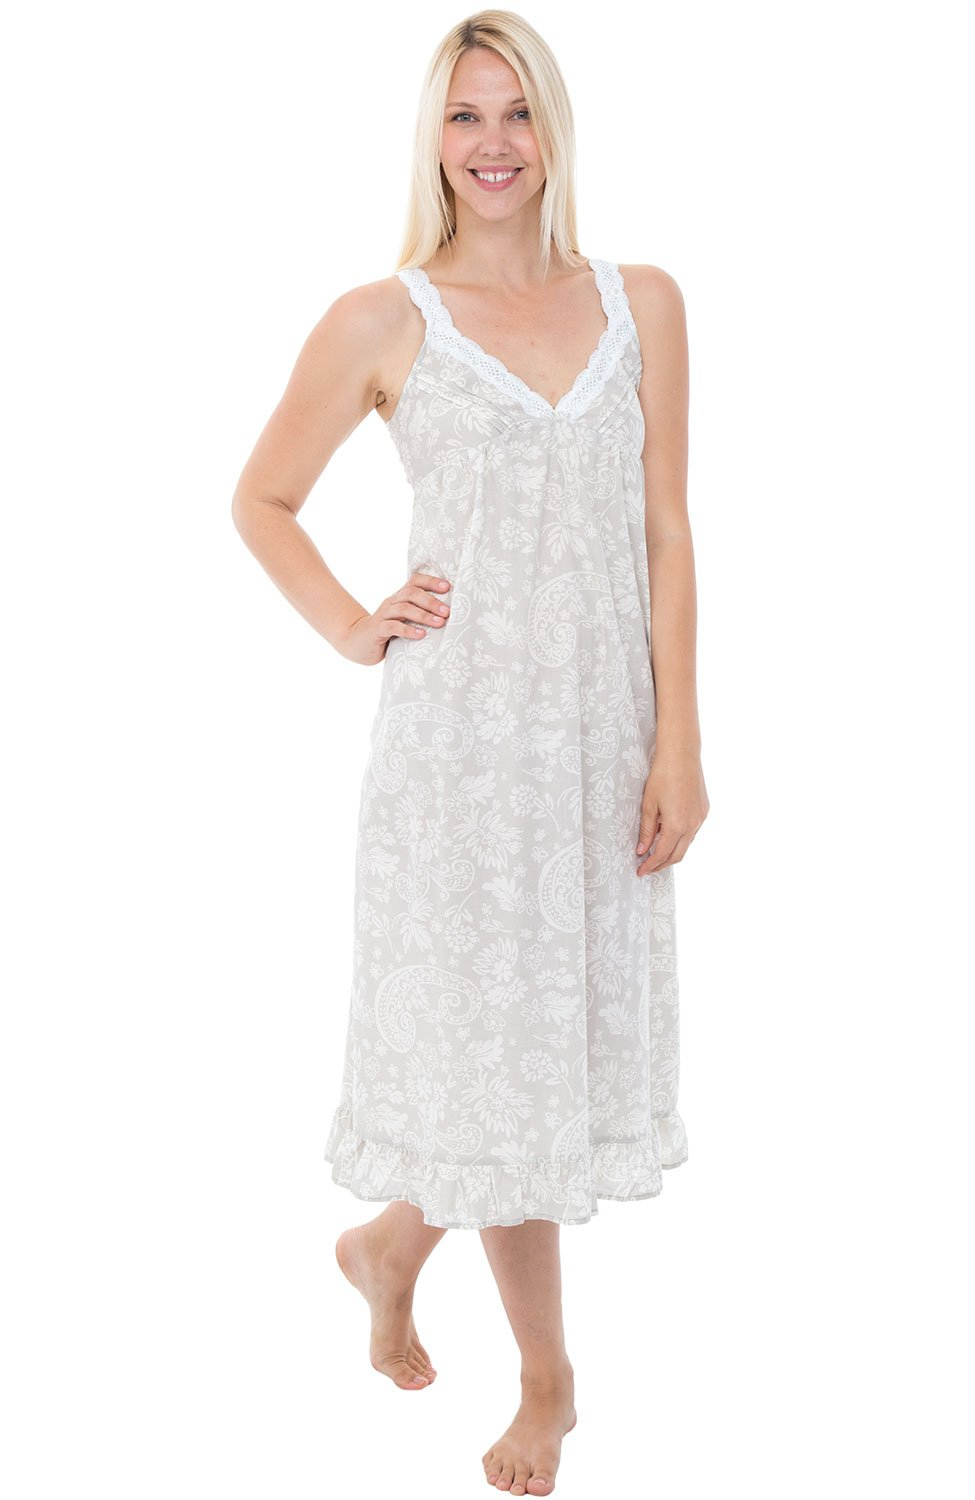 Alexander Del Rossa Womens 100% Cotton Lawn Nightgown, Sleeveless Deep V Gown